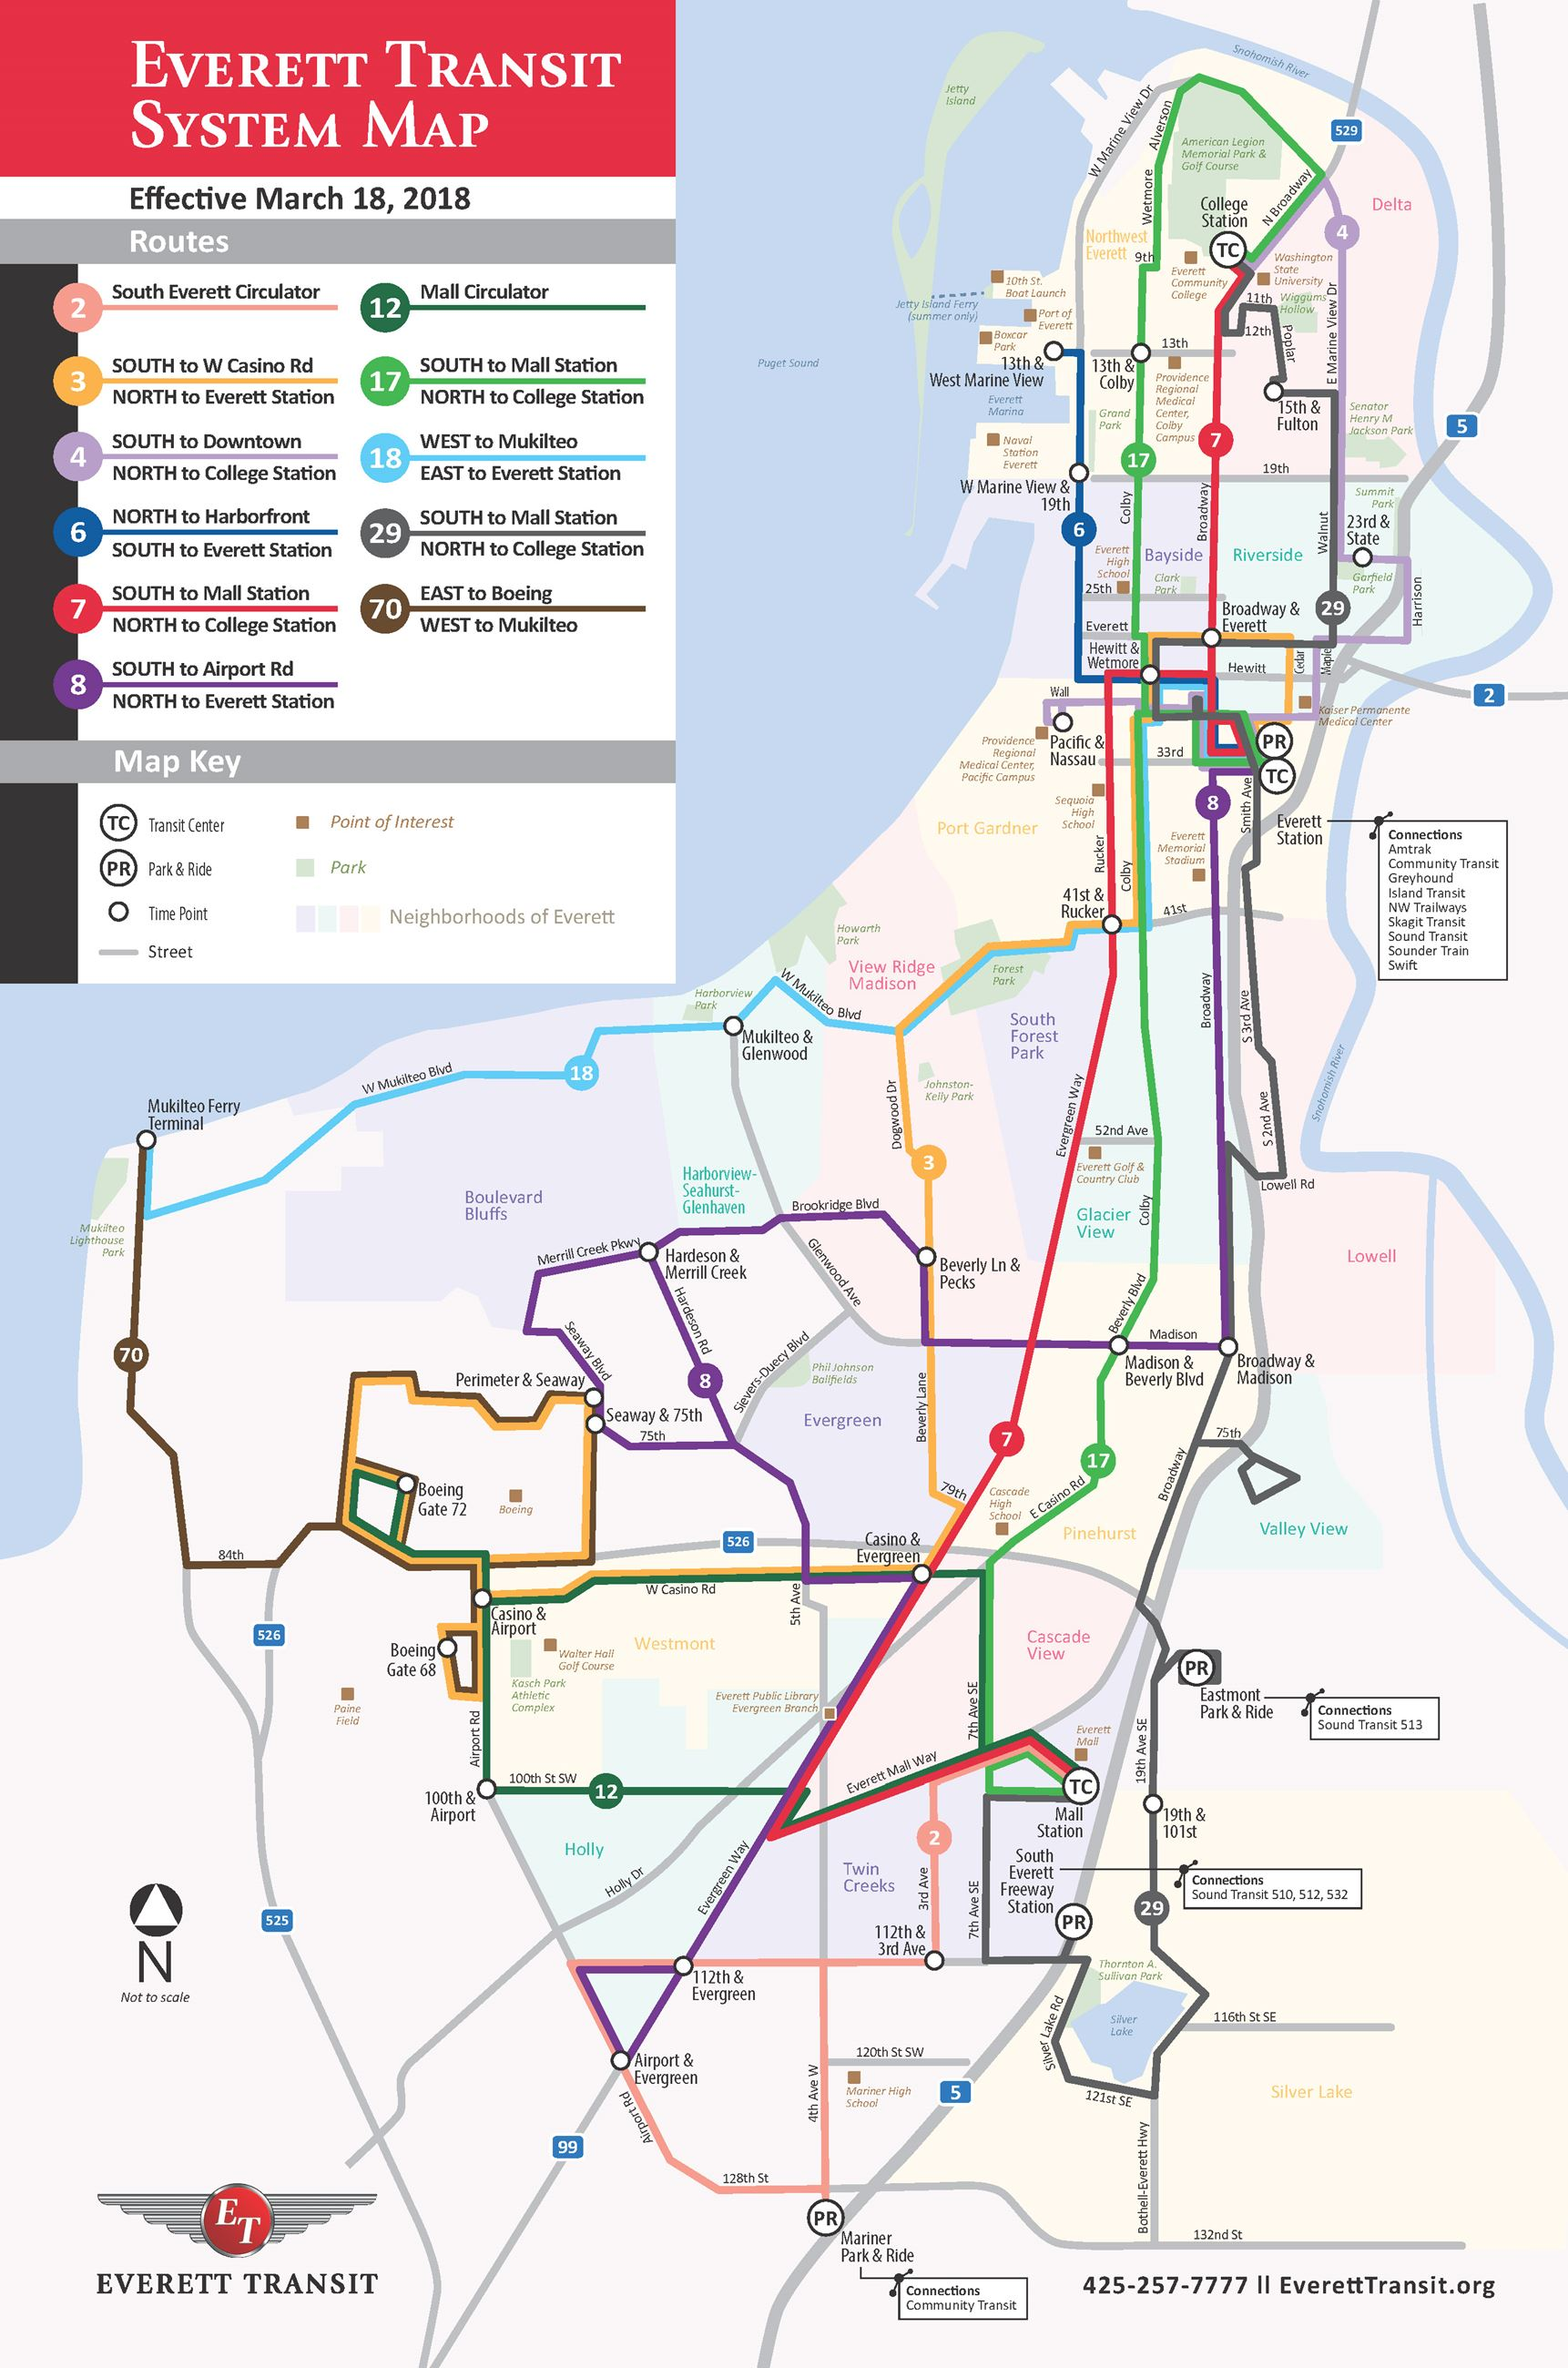 Transit System Map Opens in new window